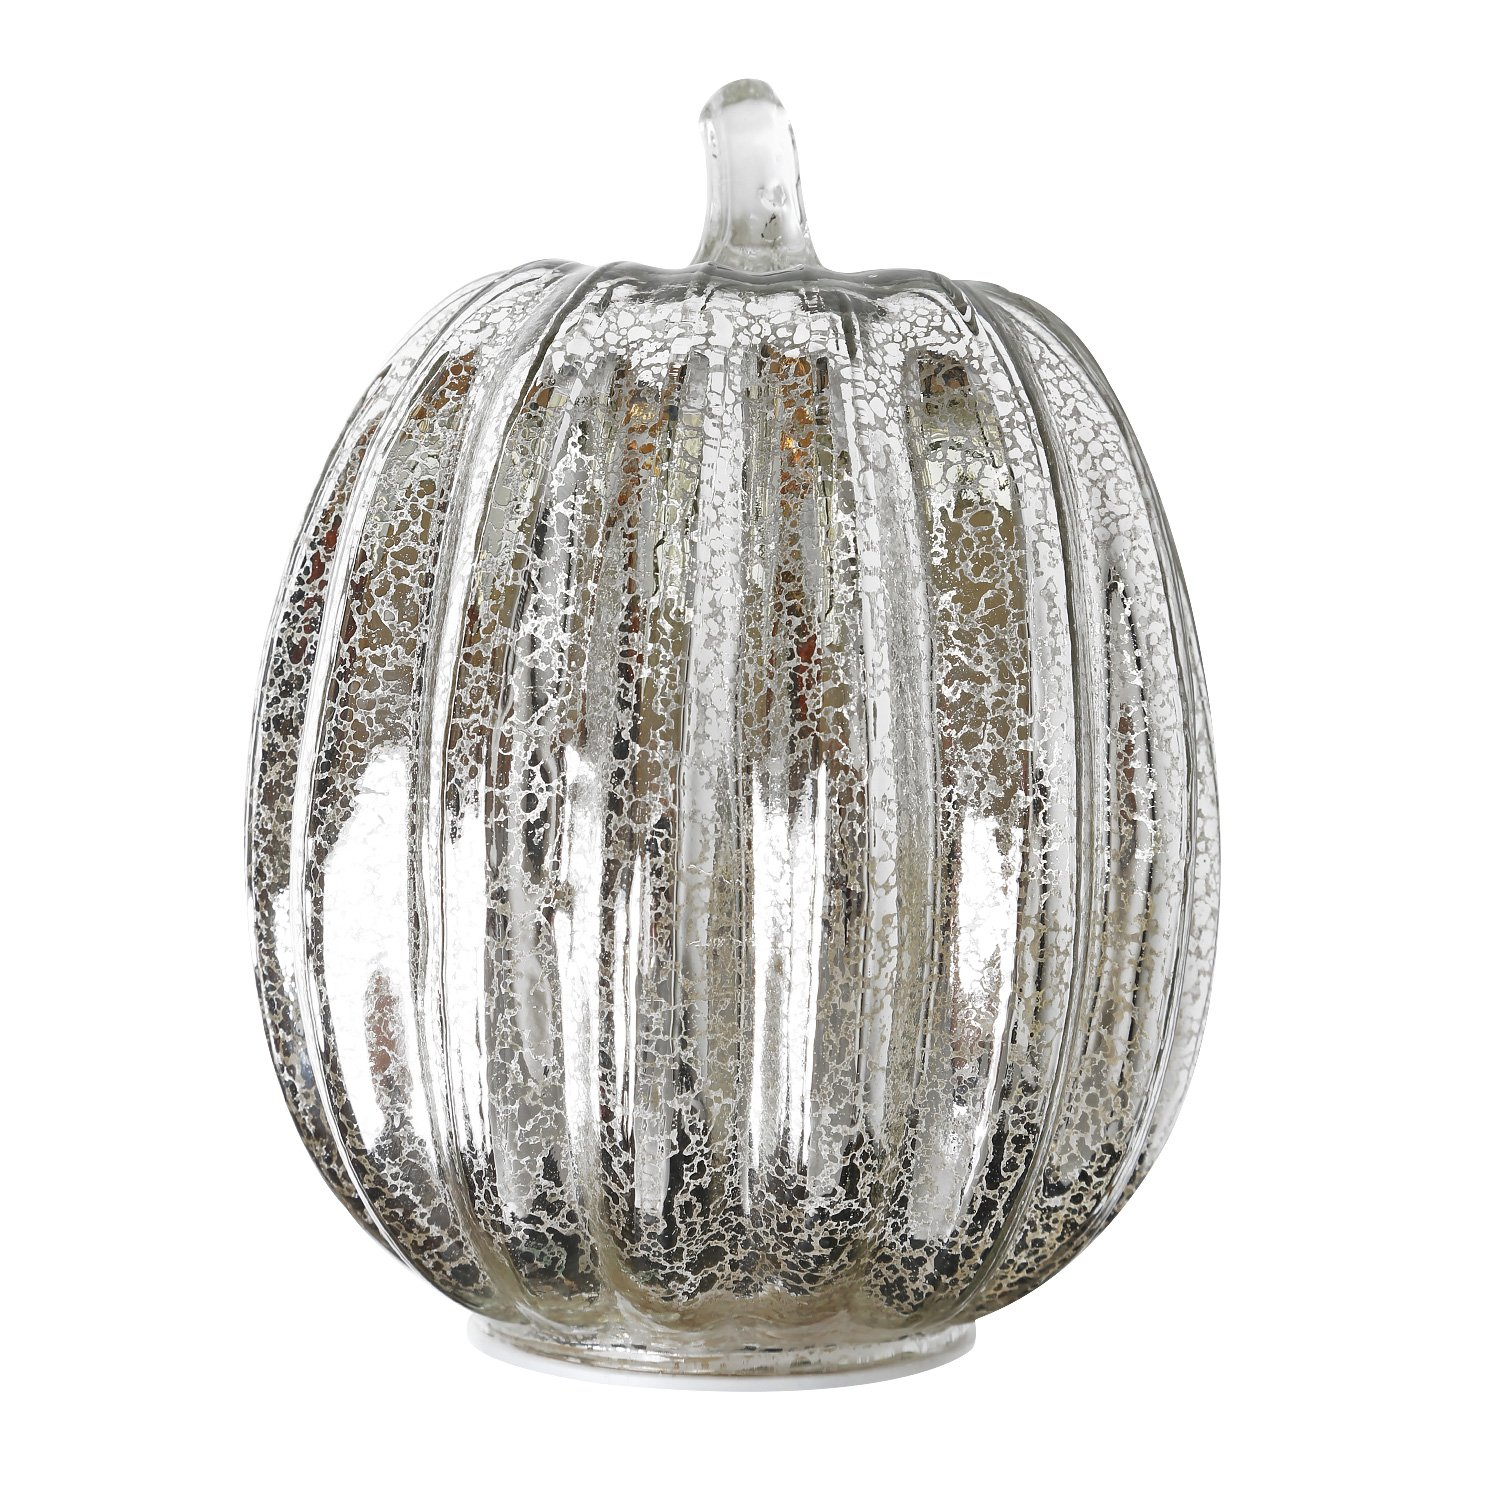 Romingo Mercury Glass Lighted Pumpkin with Timer for Fall and Home Decor, Silver, 7.5 inches